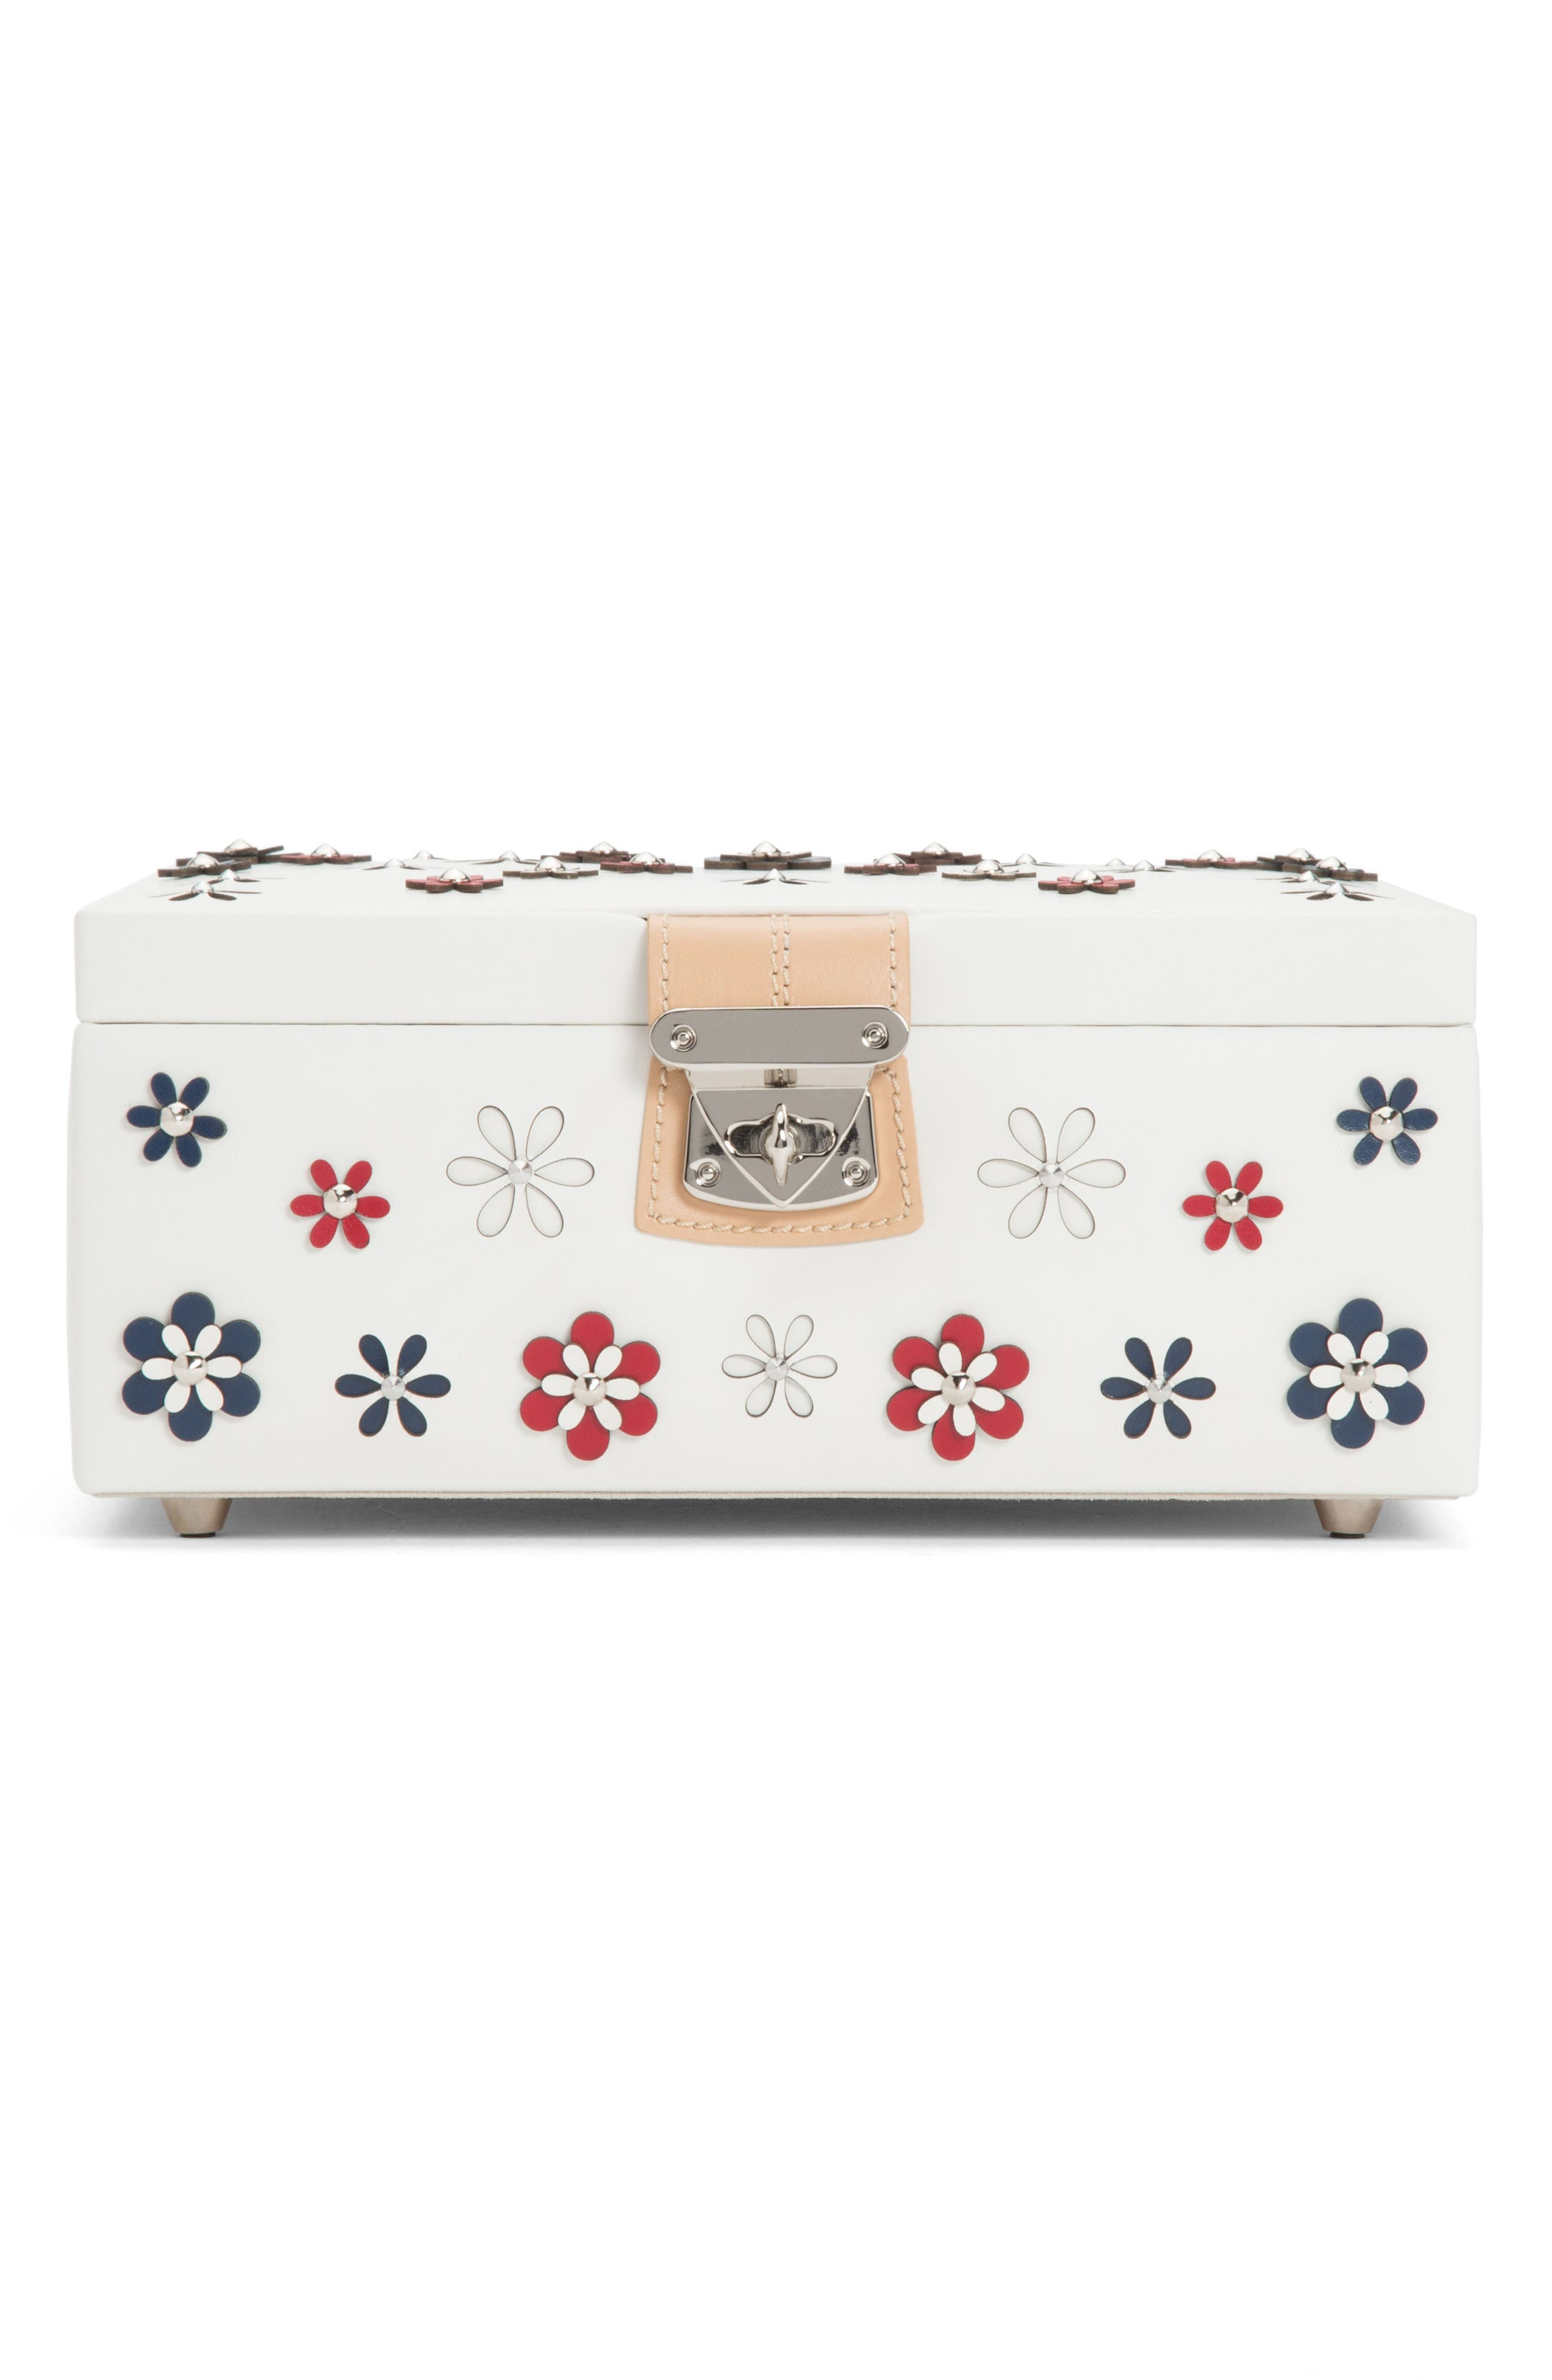 MEDIUM BLOSSOM JEWELRY BOX - IVORY